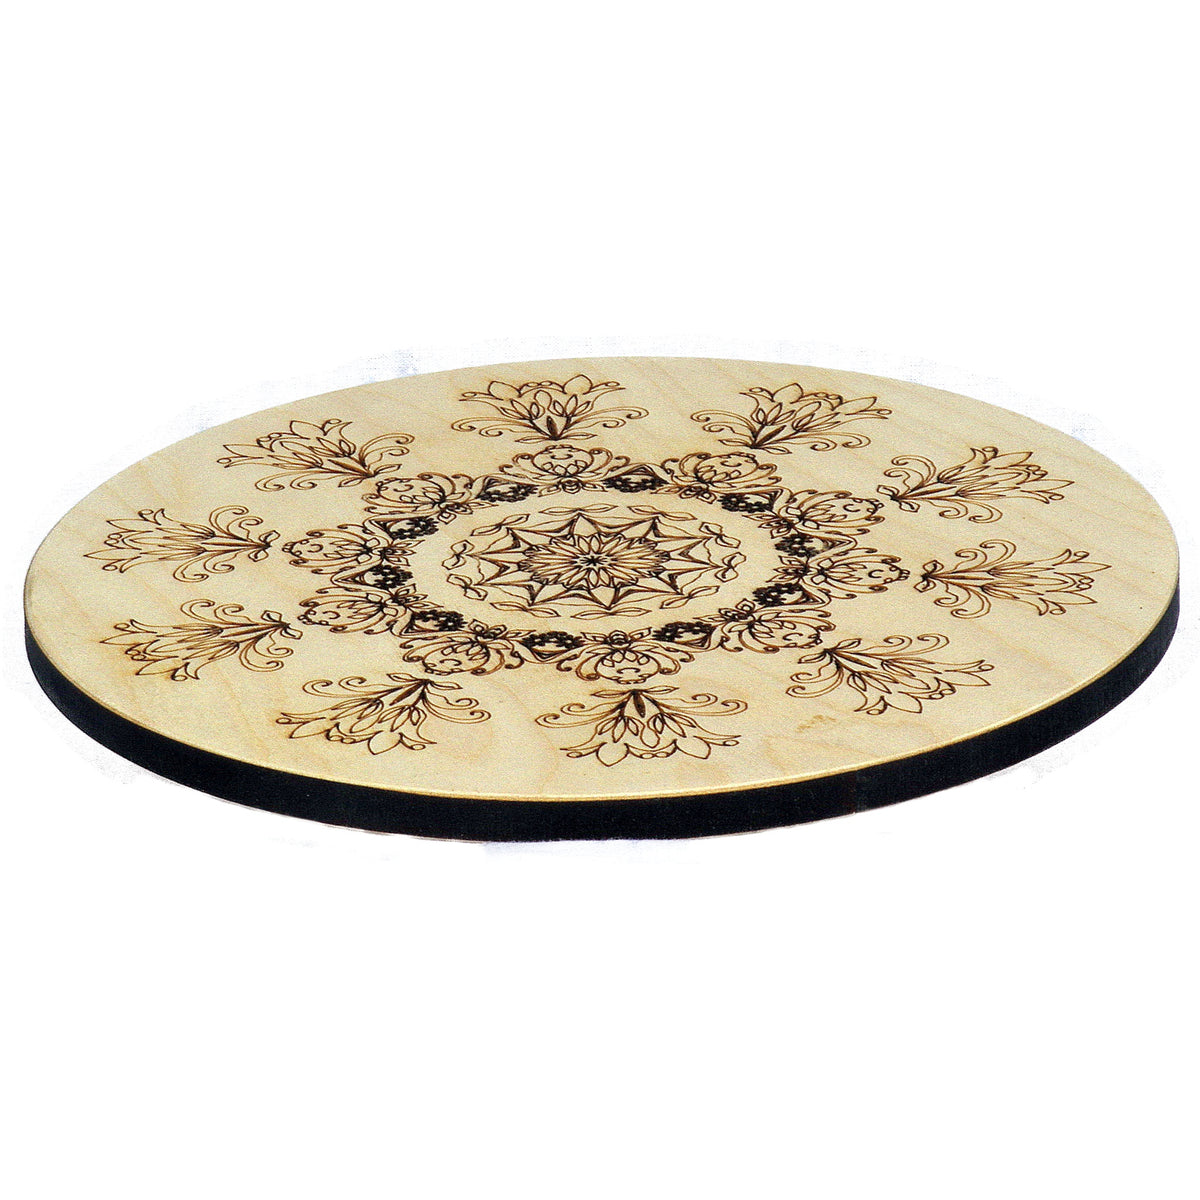 Flower figures Laser Cut and Engraved Large Coaster